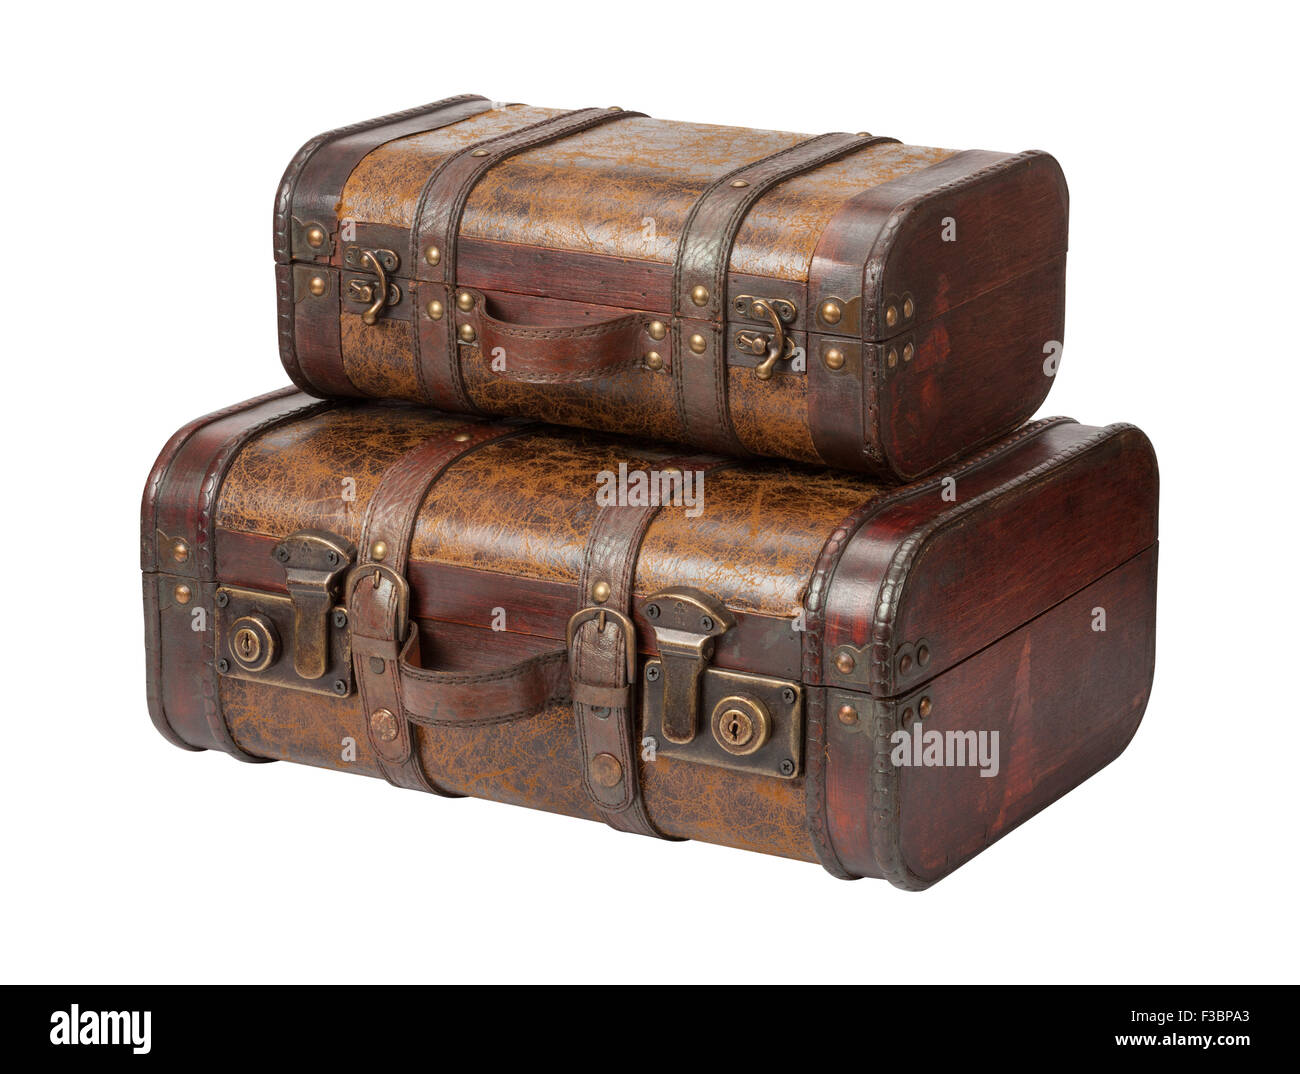 Two Antique Leather Suitcases Stacked. The image is a cut out, isolated on a white background. - Stock Image